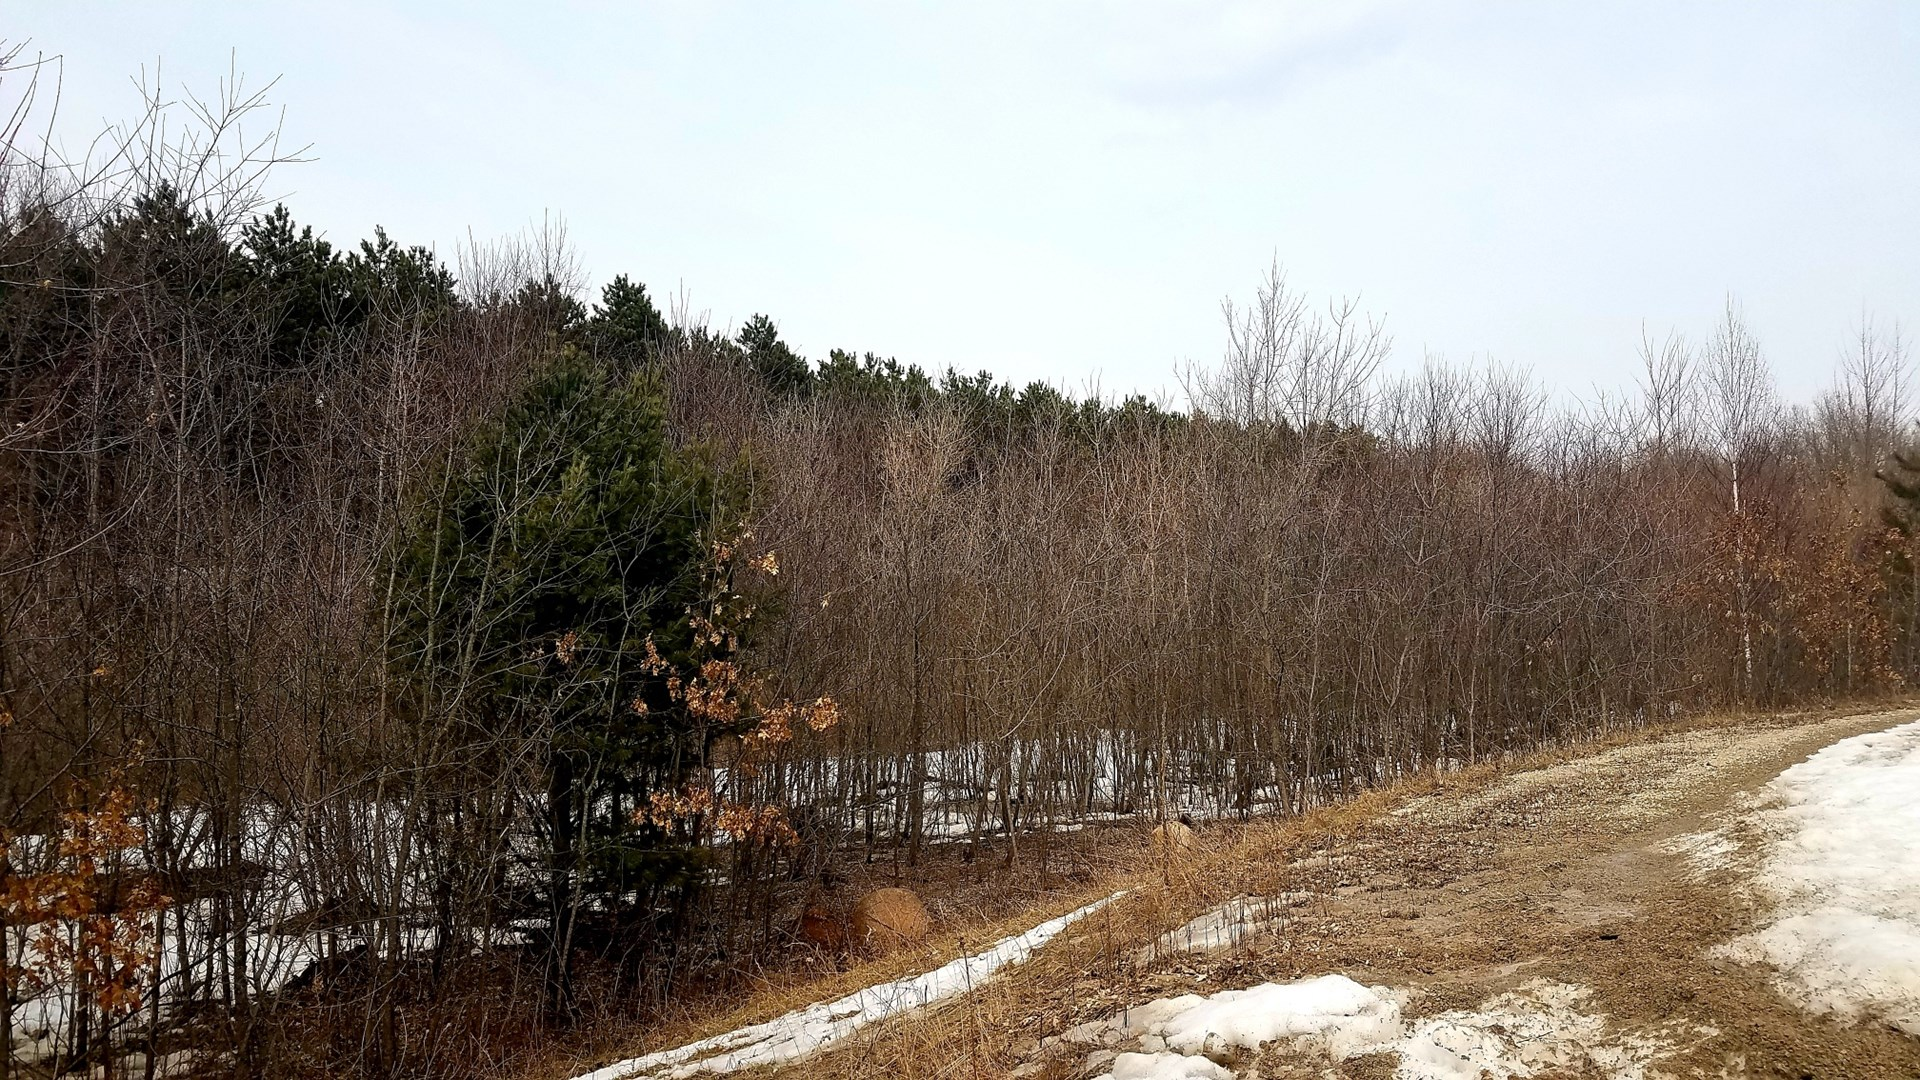 Wooded Land for Sale in Waupaca County WI